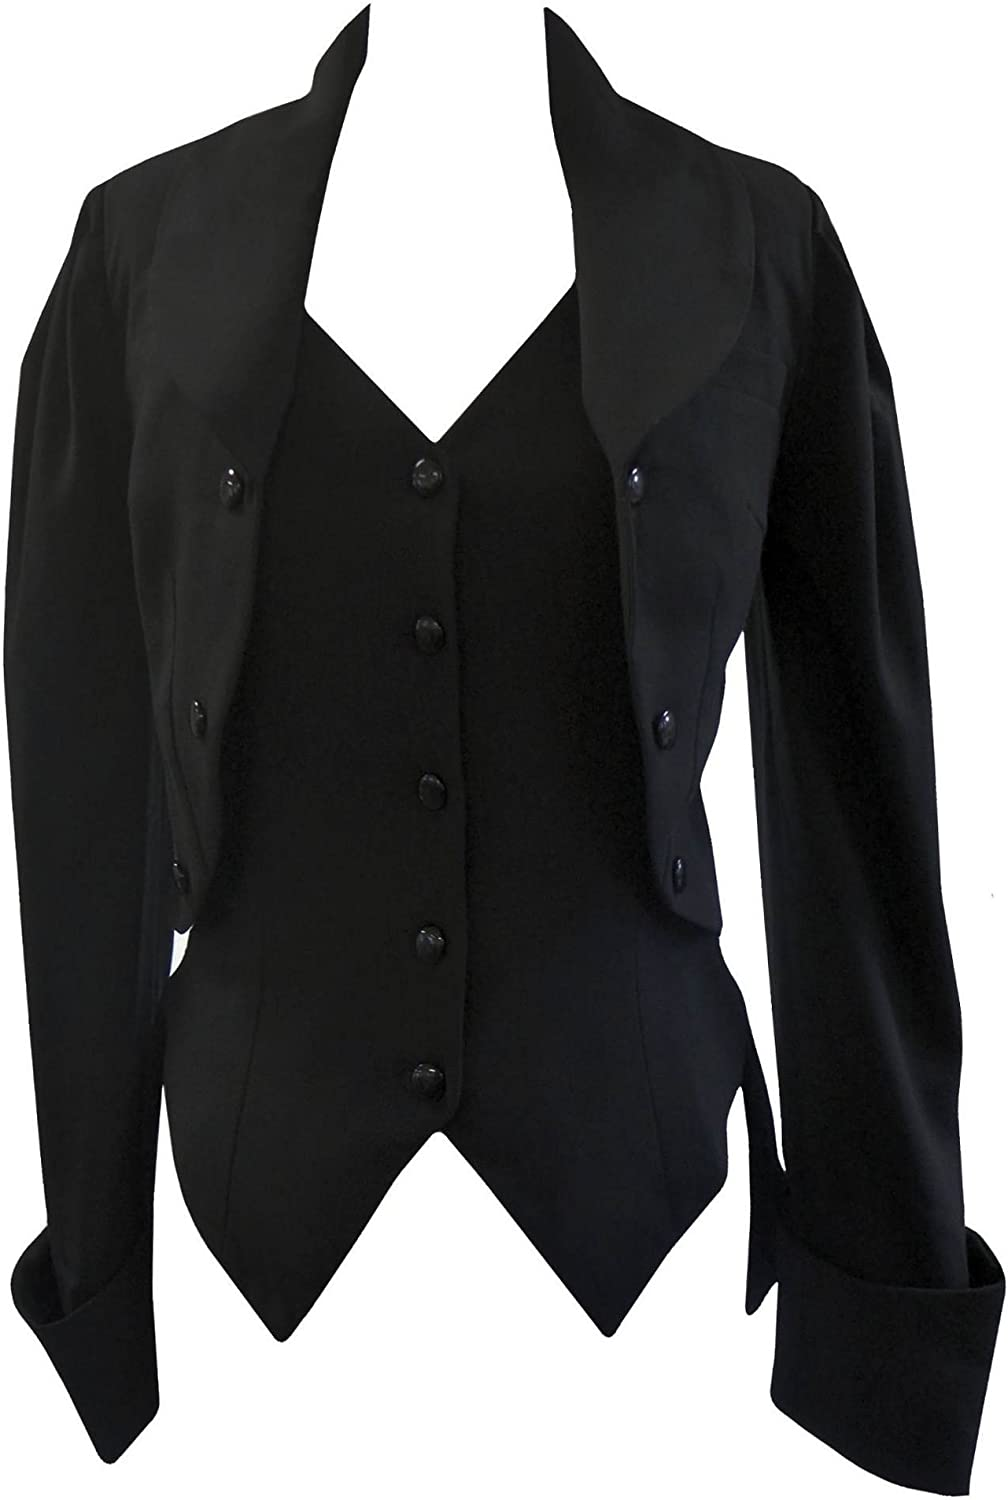 Black Victorian Gothic Corset Fishtail Mock Waistcoat Jacket Coat US Sizes 628